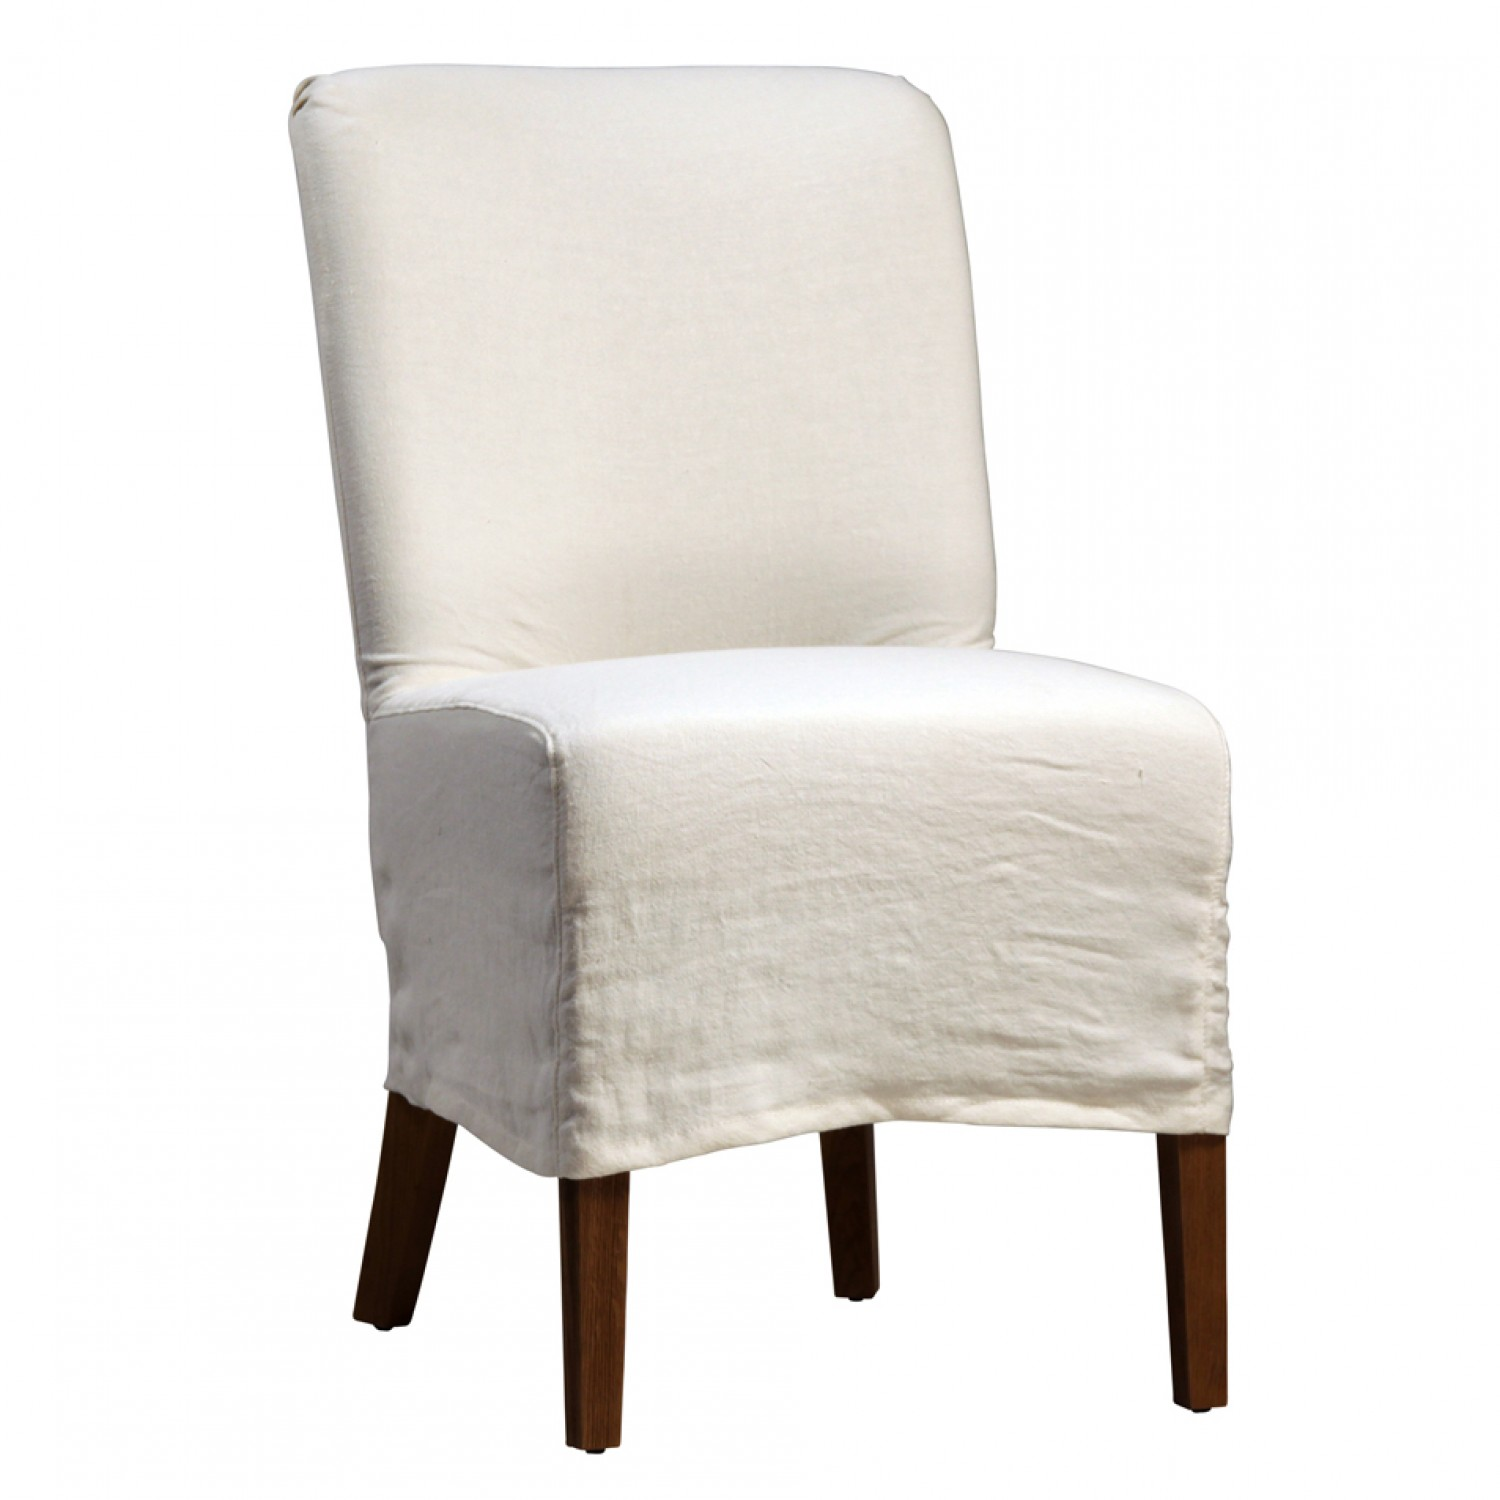 white slipcovered dining chairs photo - 1